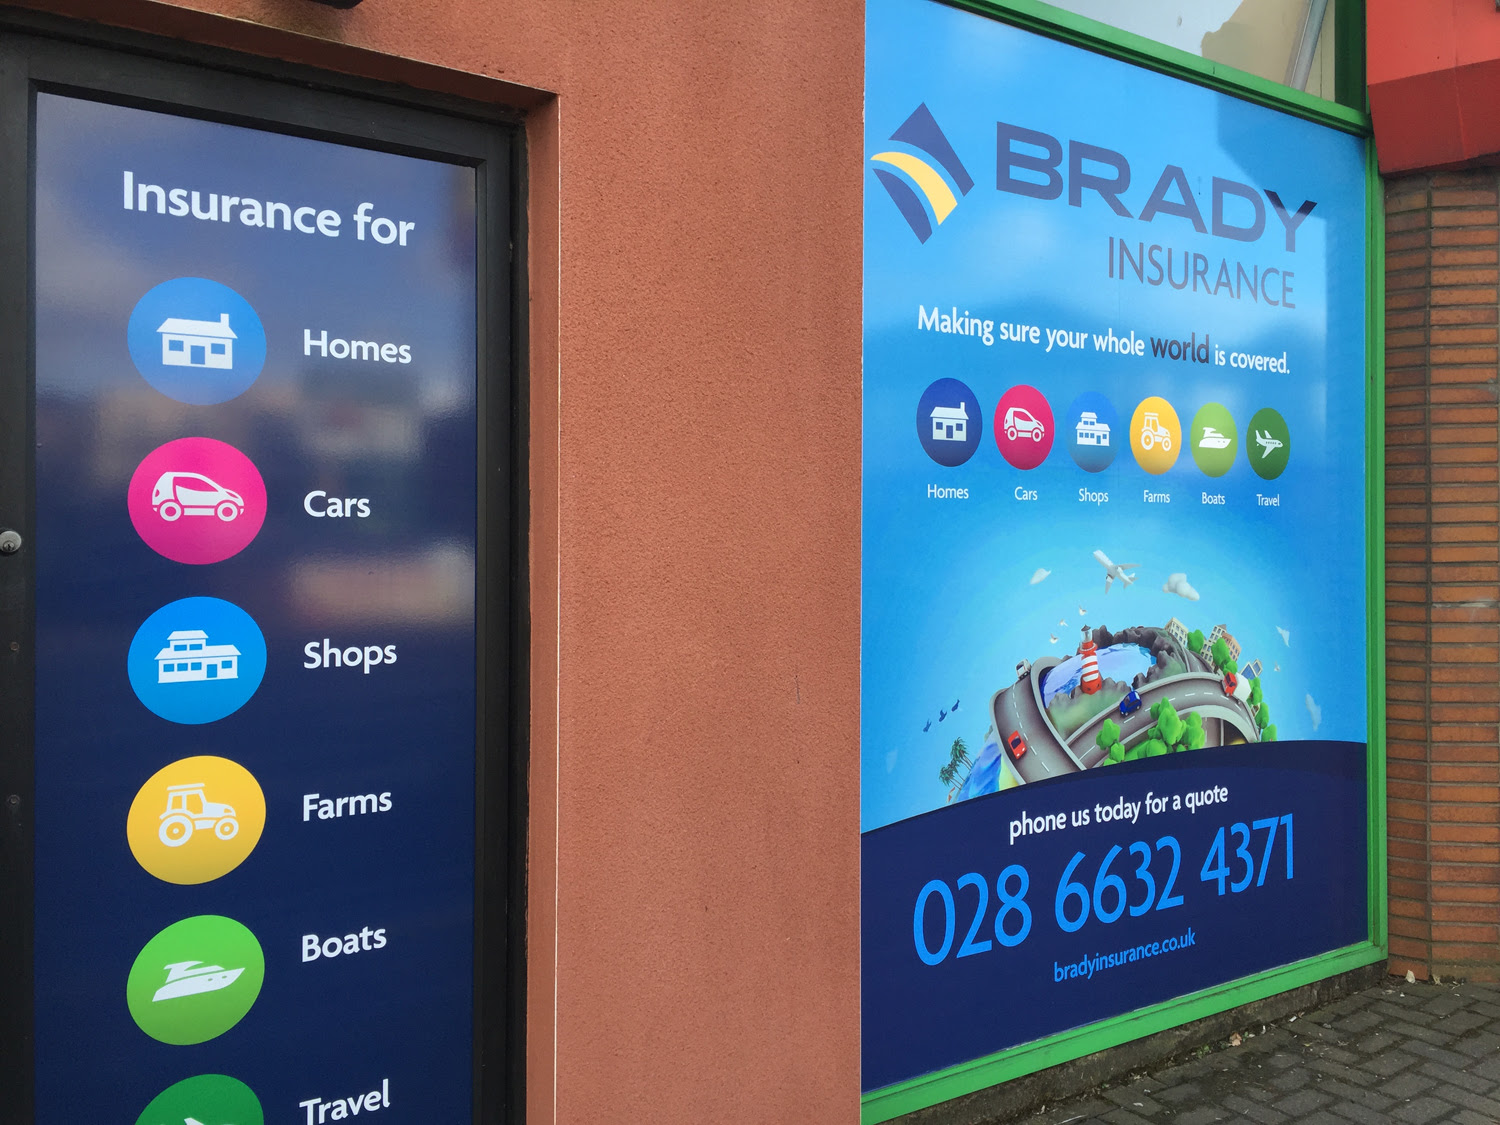 New Signage and Window Graphics for Brady Insurance | Le ...